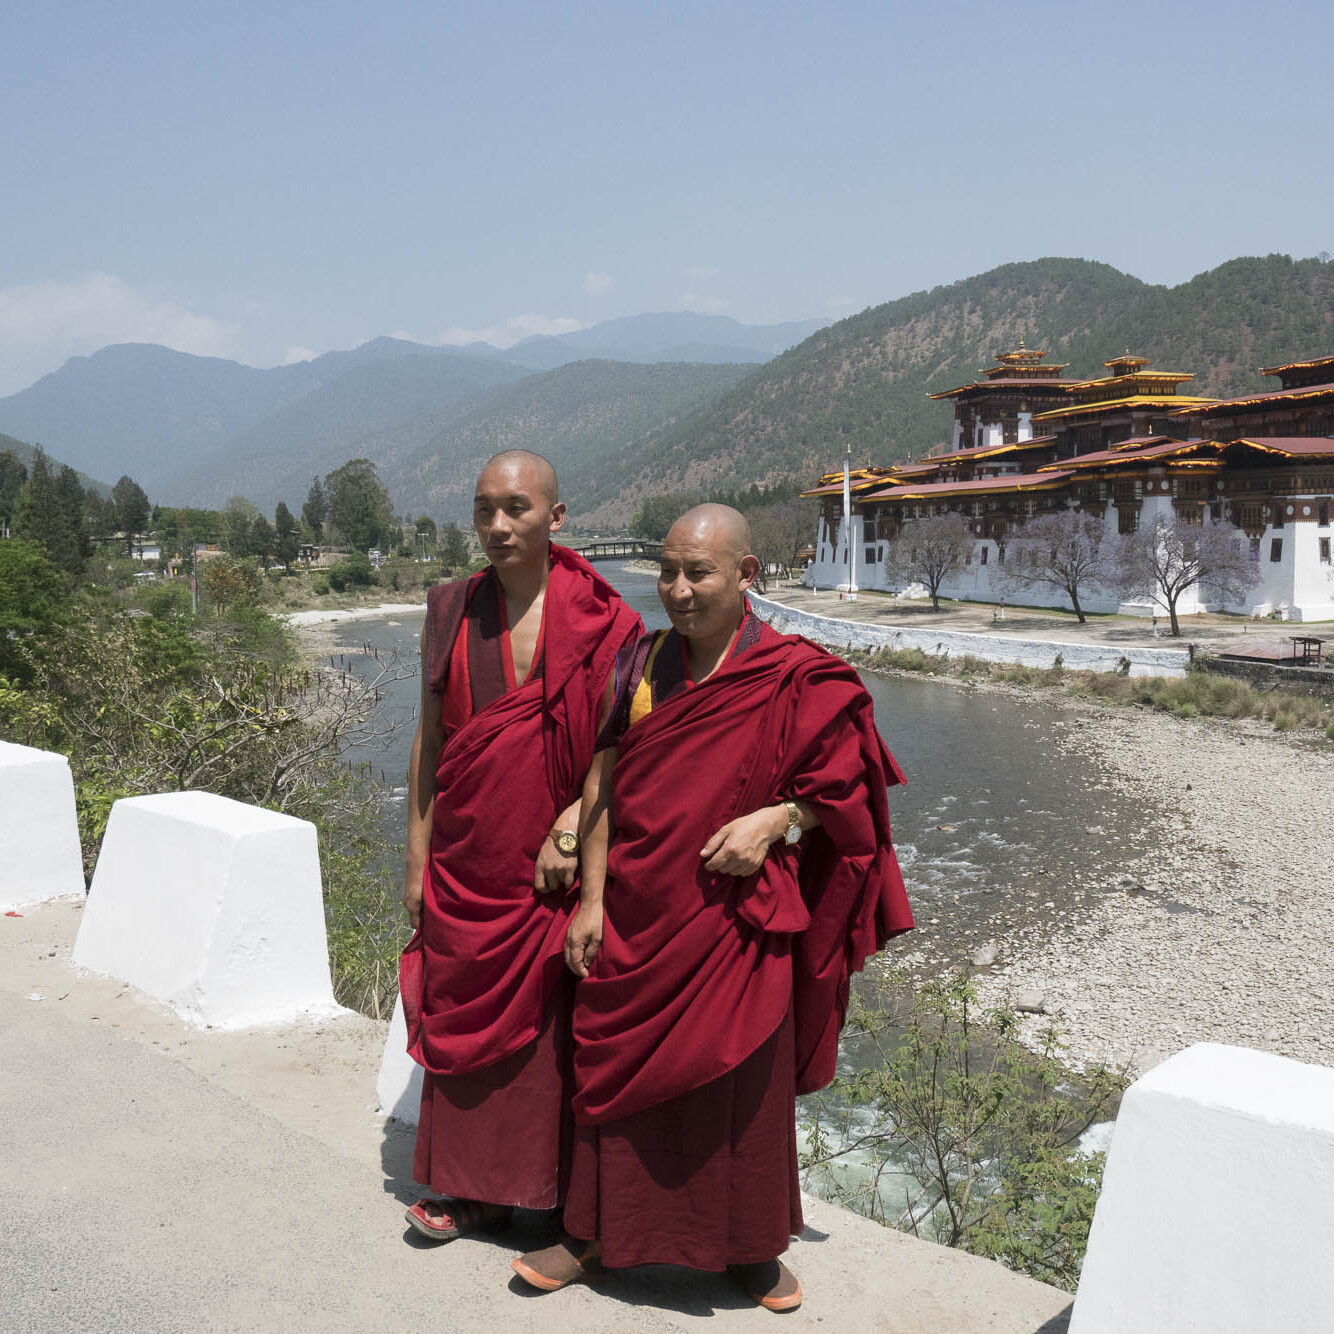 Two Bhutanese monks pose for photos in front of a temple